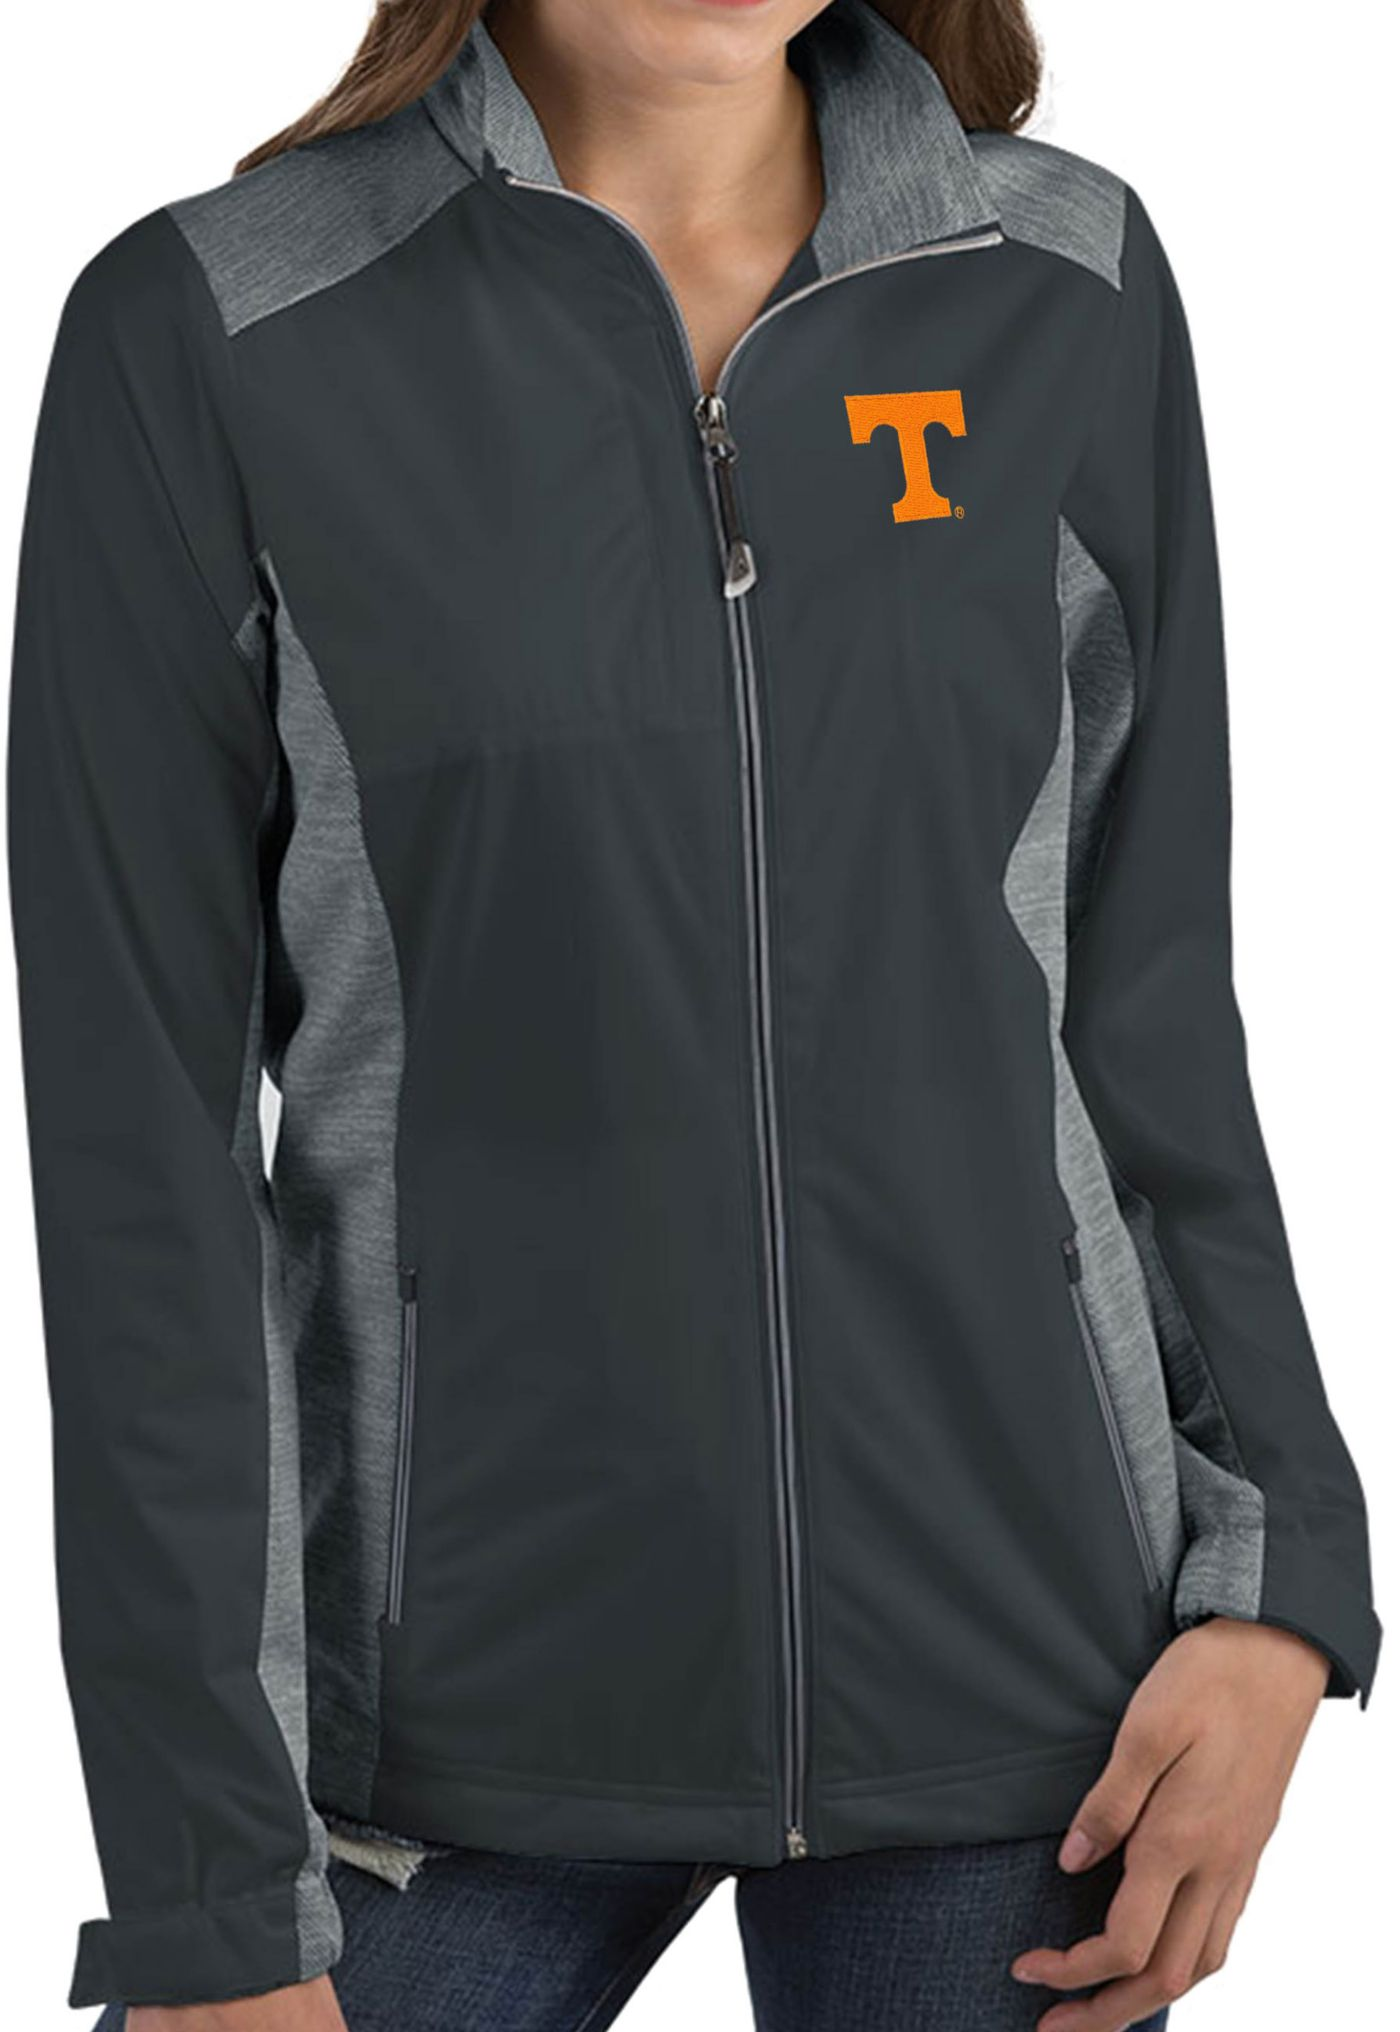 Antigua Women's Tennessee Volunteers Grey Revolve Full-Zip Jacket